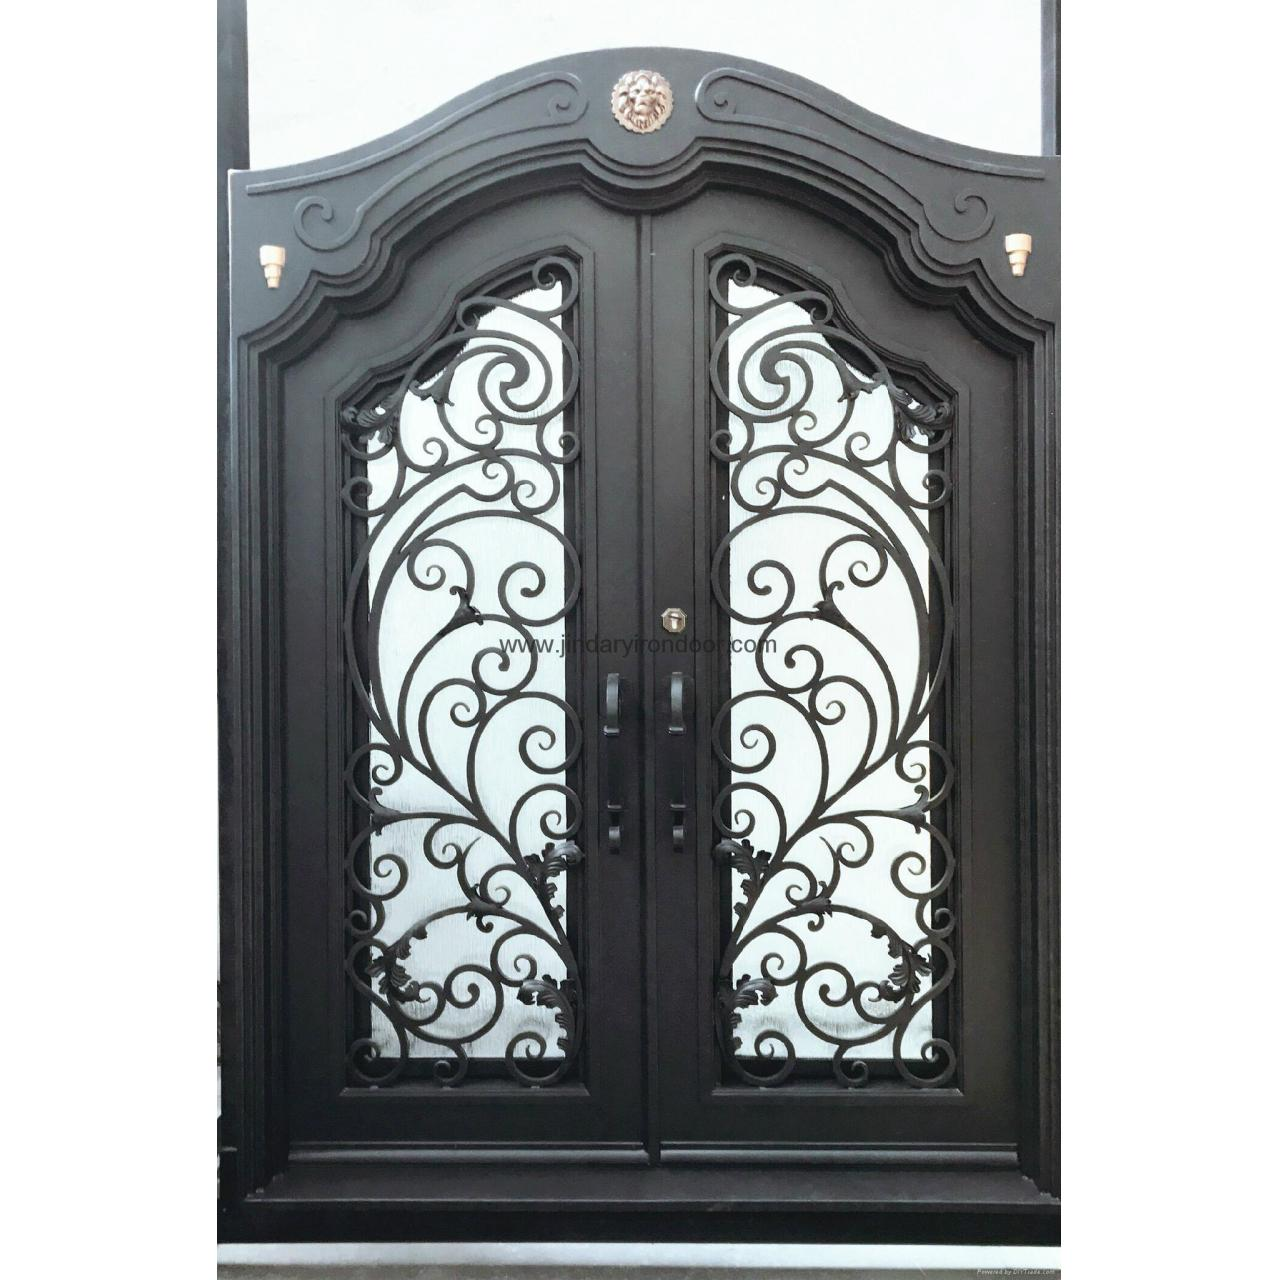 Wrought Iron, Wrought Iron Gates, Wrought Iron Railings, Iron & Iron Work, Wroug